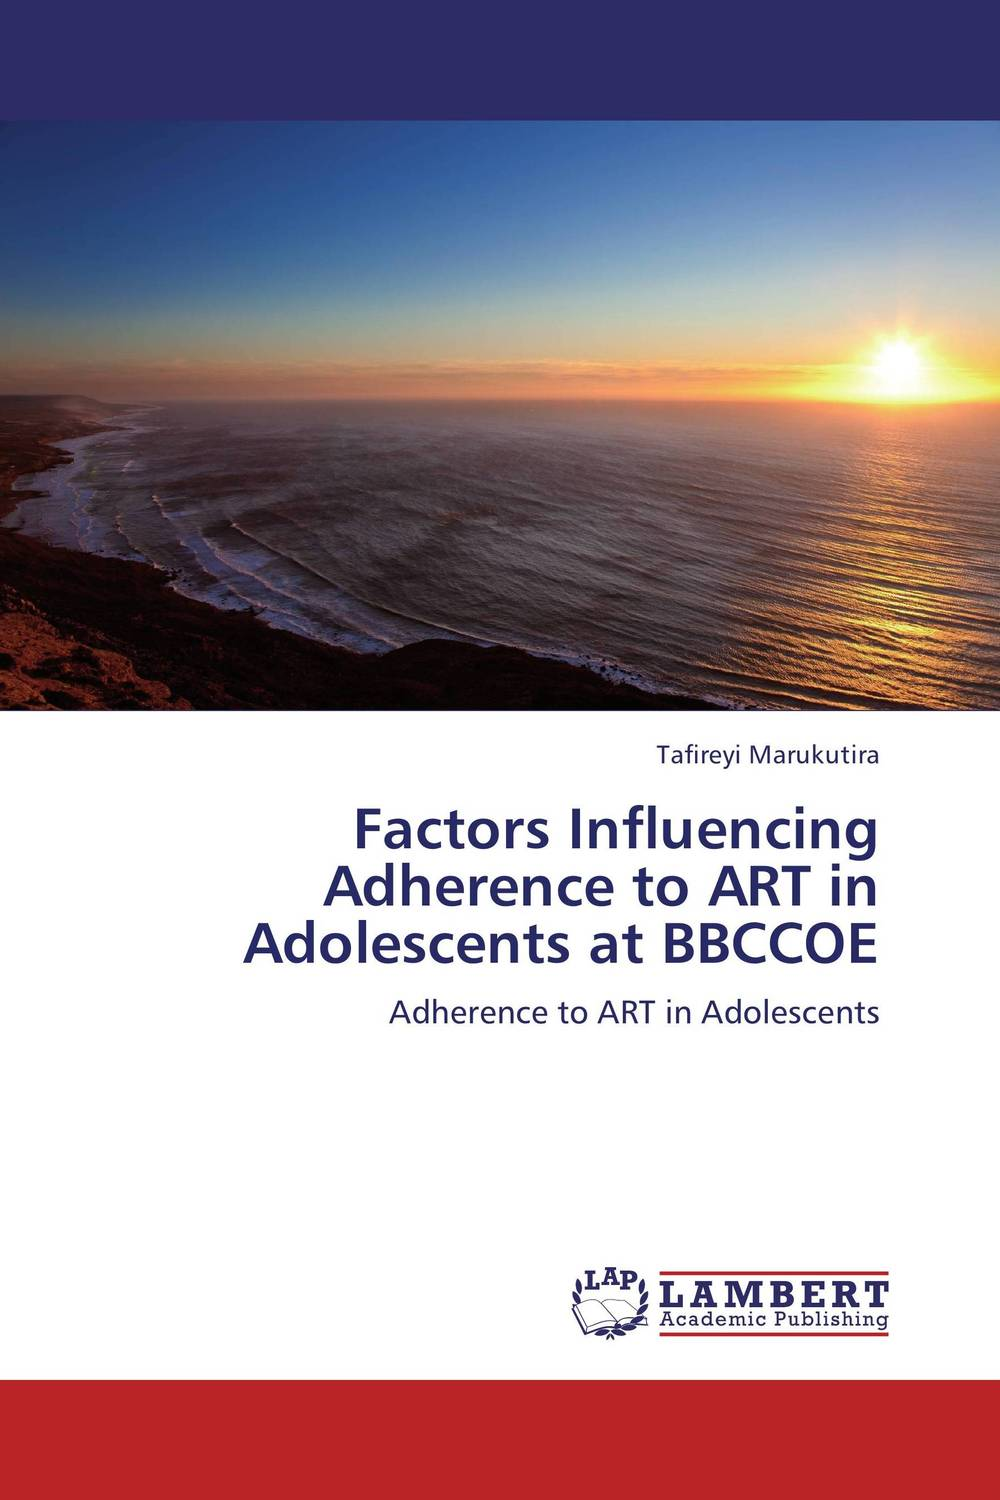 Factors Influencing Adherence to ART in Adolescents at BBCCOE the art of adding and the art of taking away – selections from john updike s manuscripts